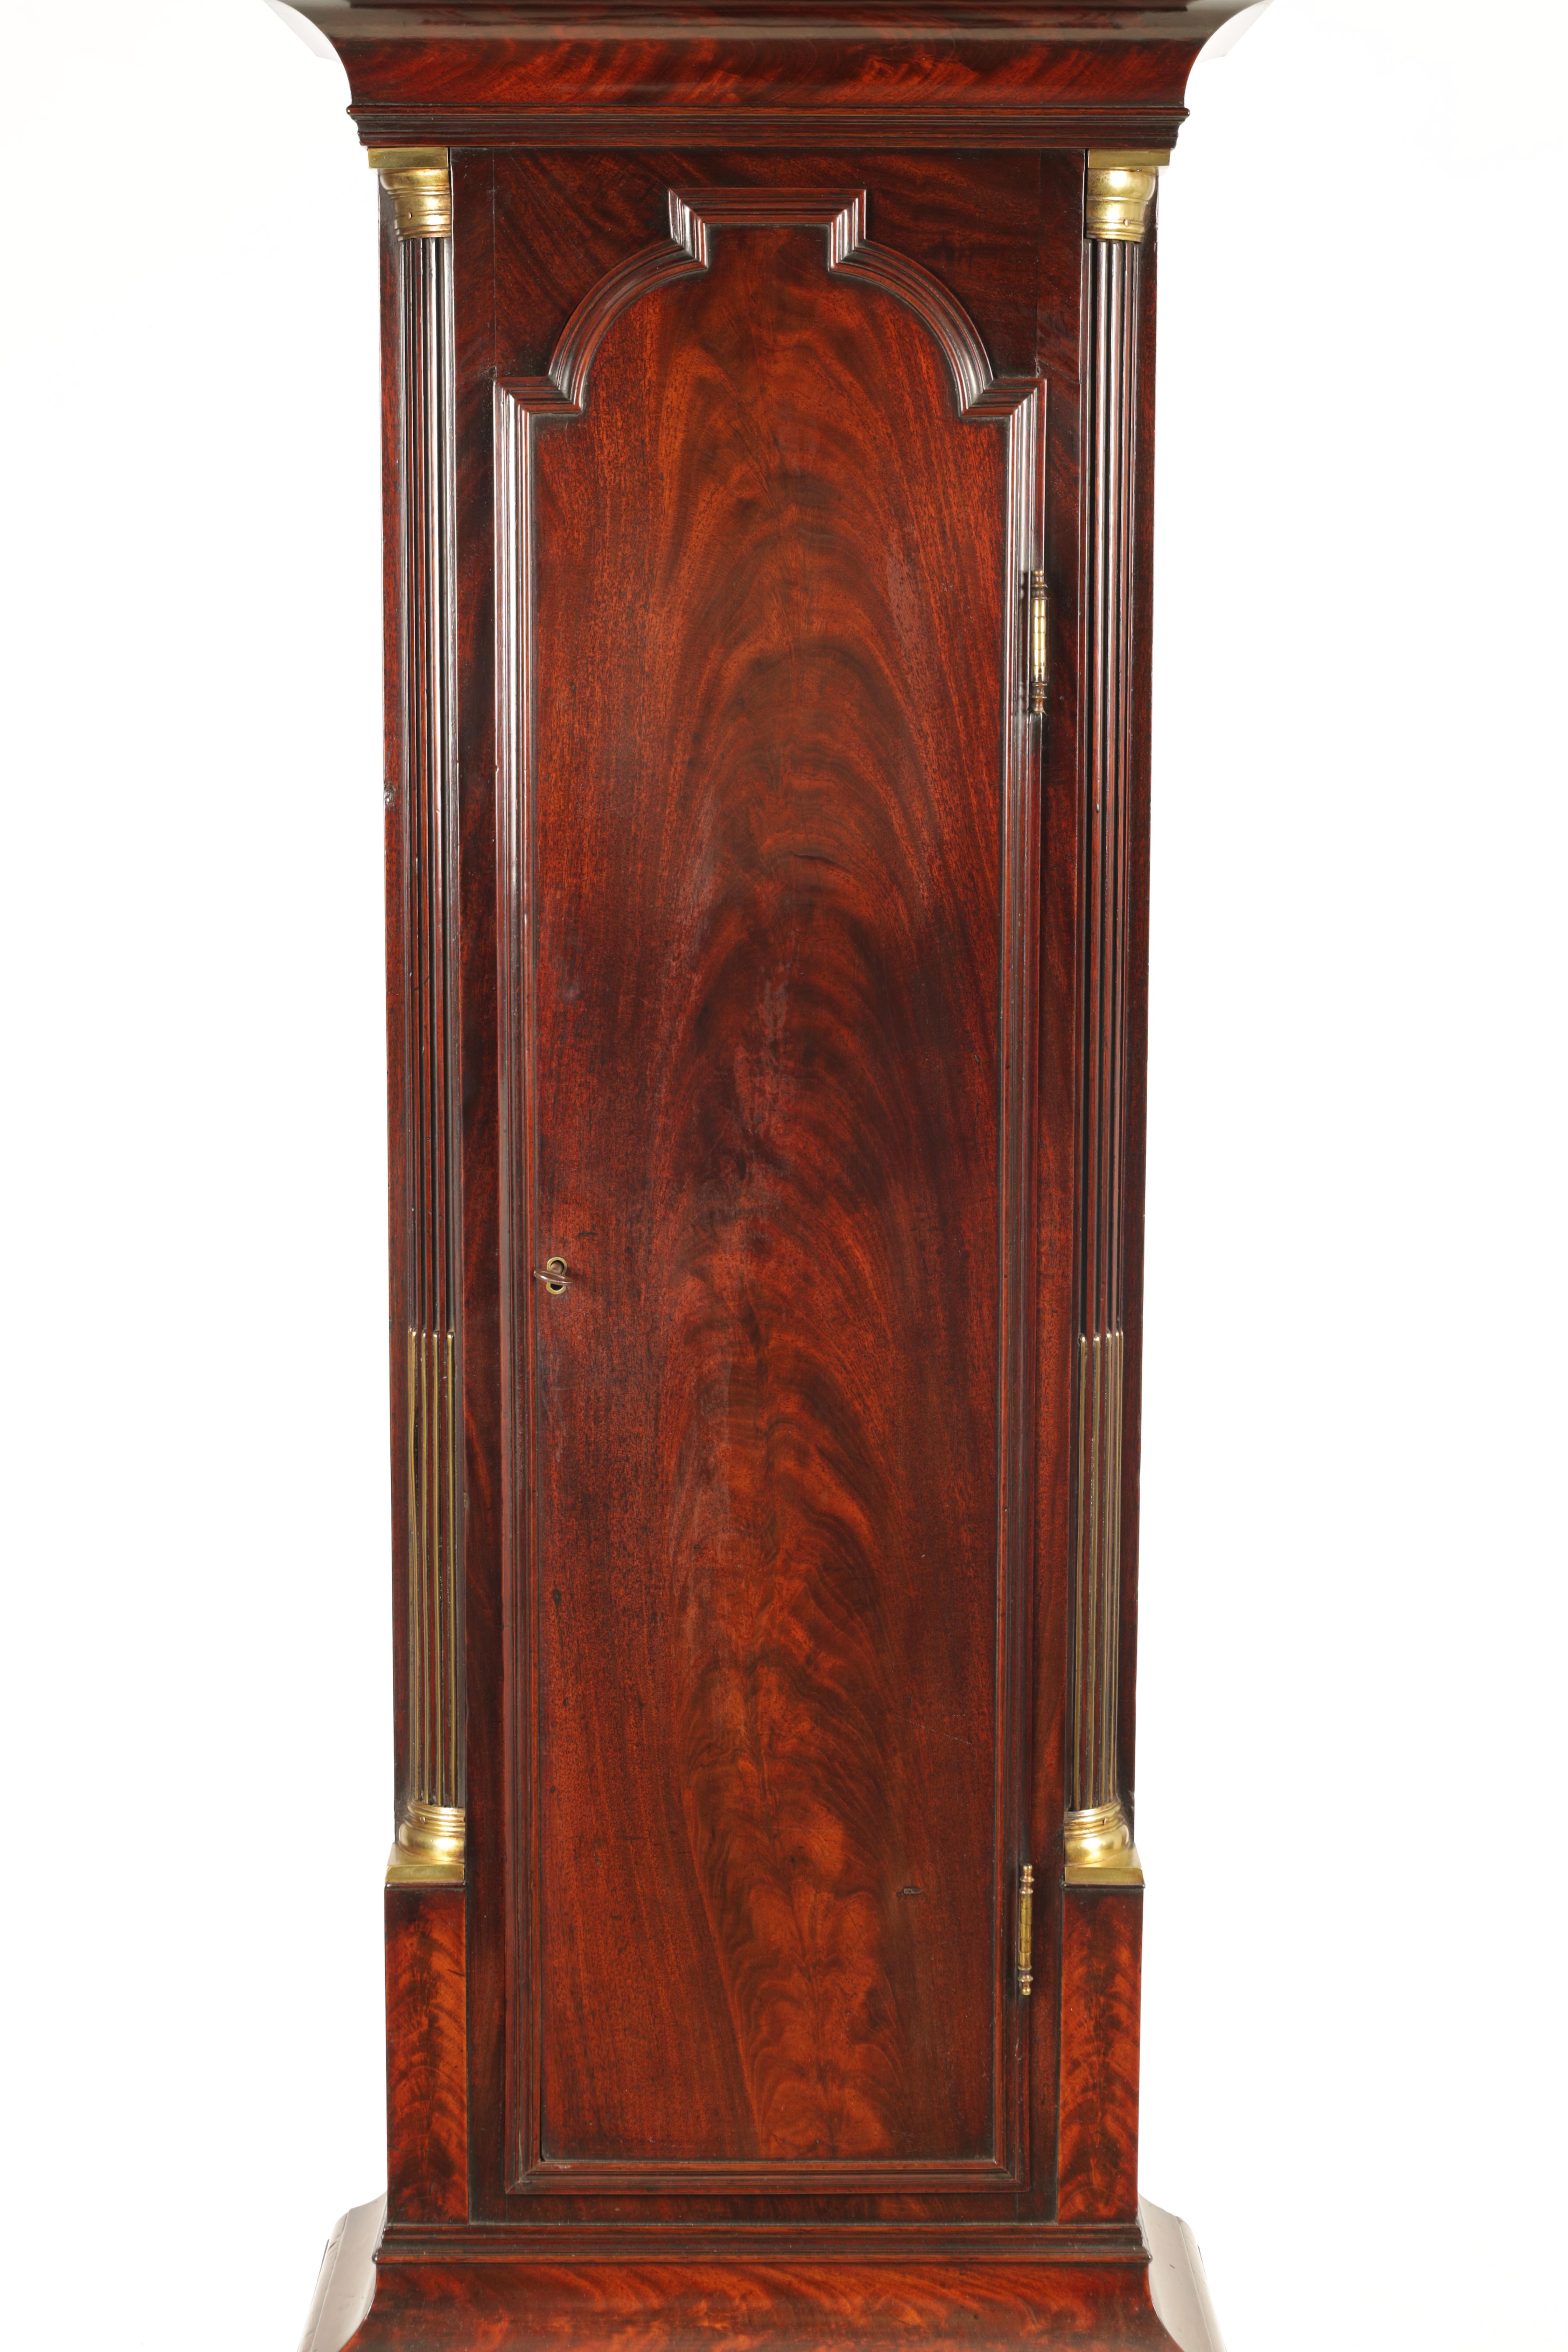 THOMAS RUSSELL, LONDON A GEORGE III FIGURED MAHOGANY LONGCASE CLOCK the arched moulded hood above - Image 3 of 5